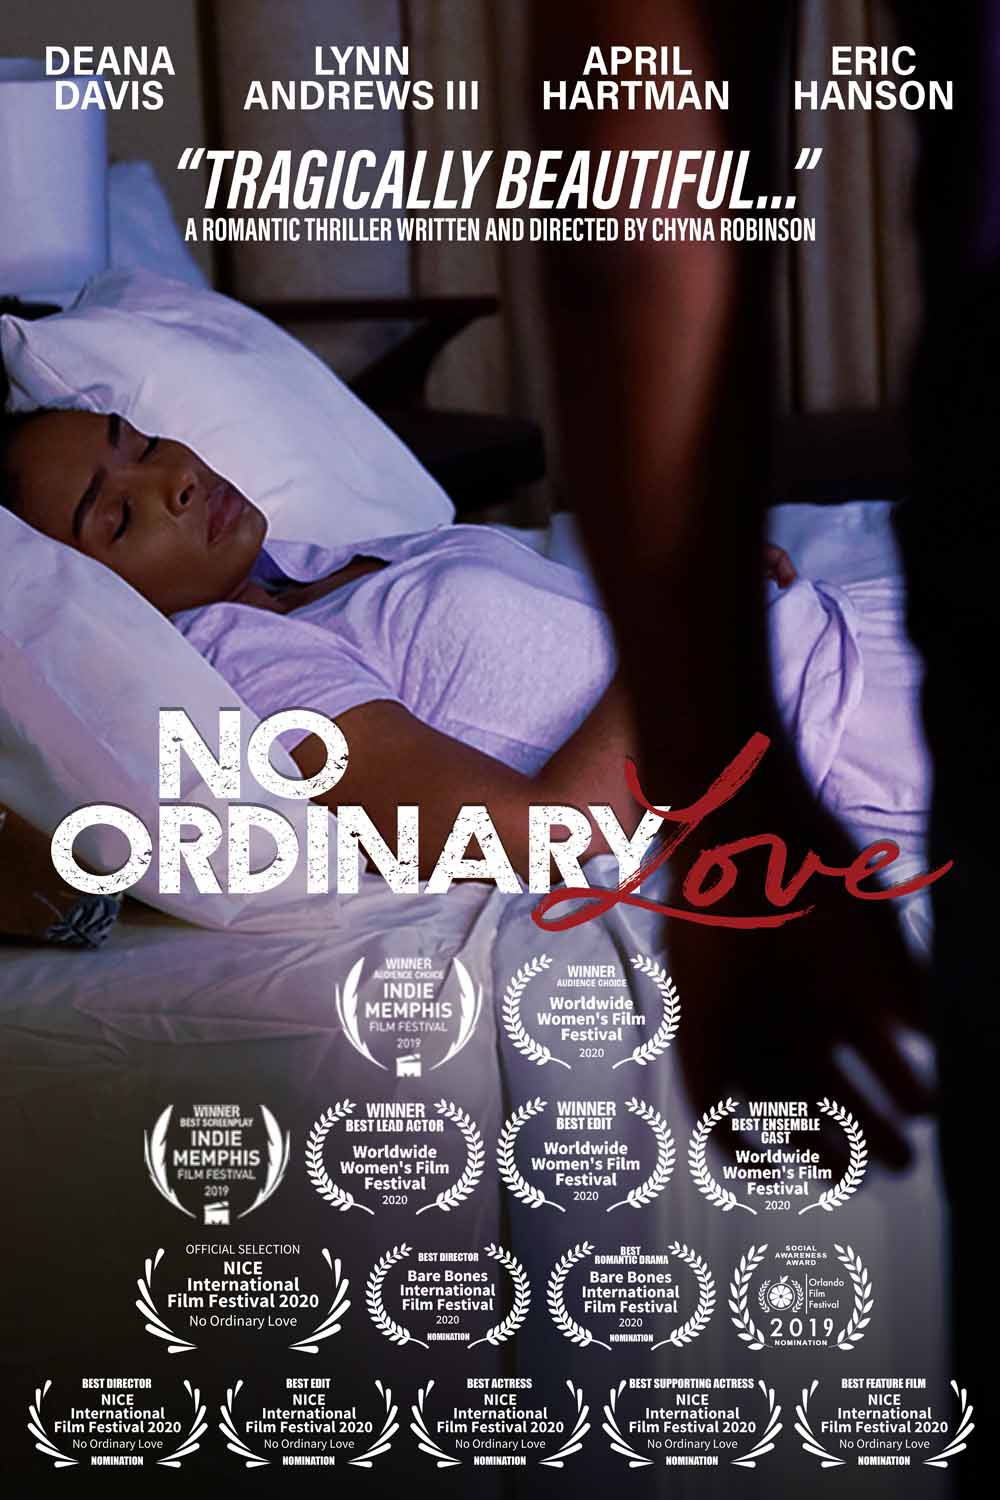 Chyna Robinson is no stranger to telling a good story, as she continues to prove with her latest film, 'No Ordinary Love.'